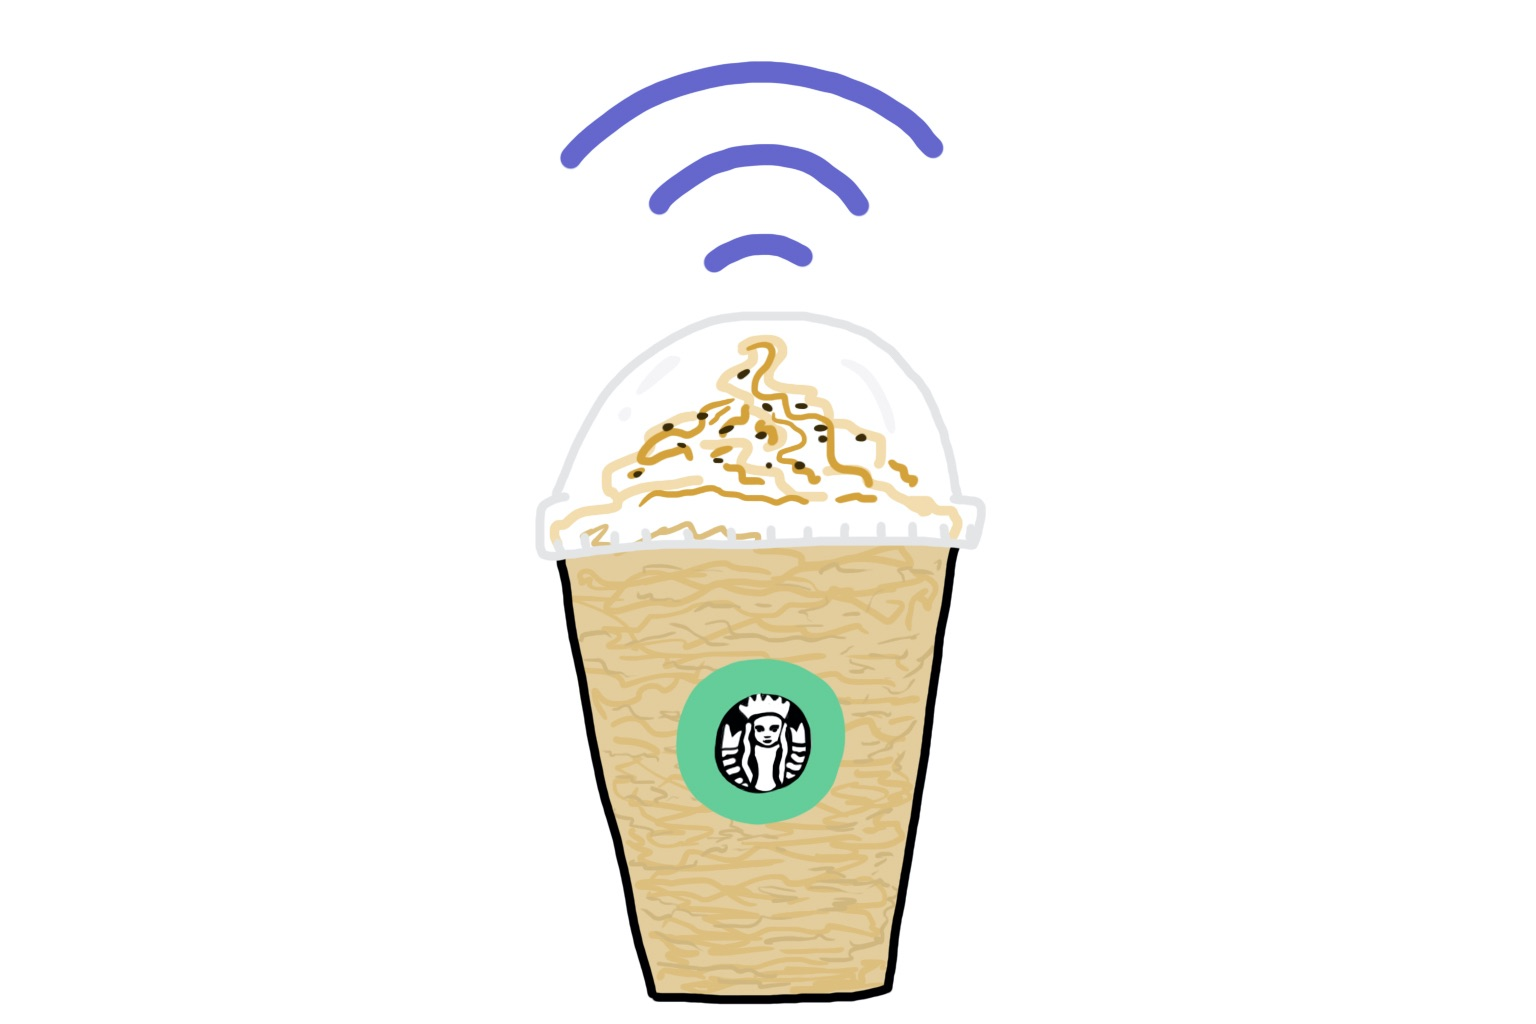 /all-you-should-know-about-cybersecurity-hygiene-when-using-public-wifi-9kz3wg0 feature image